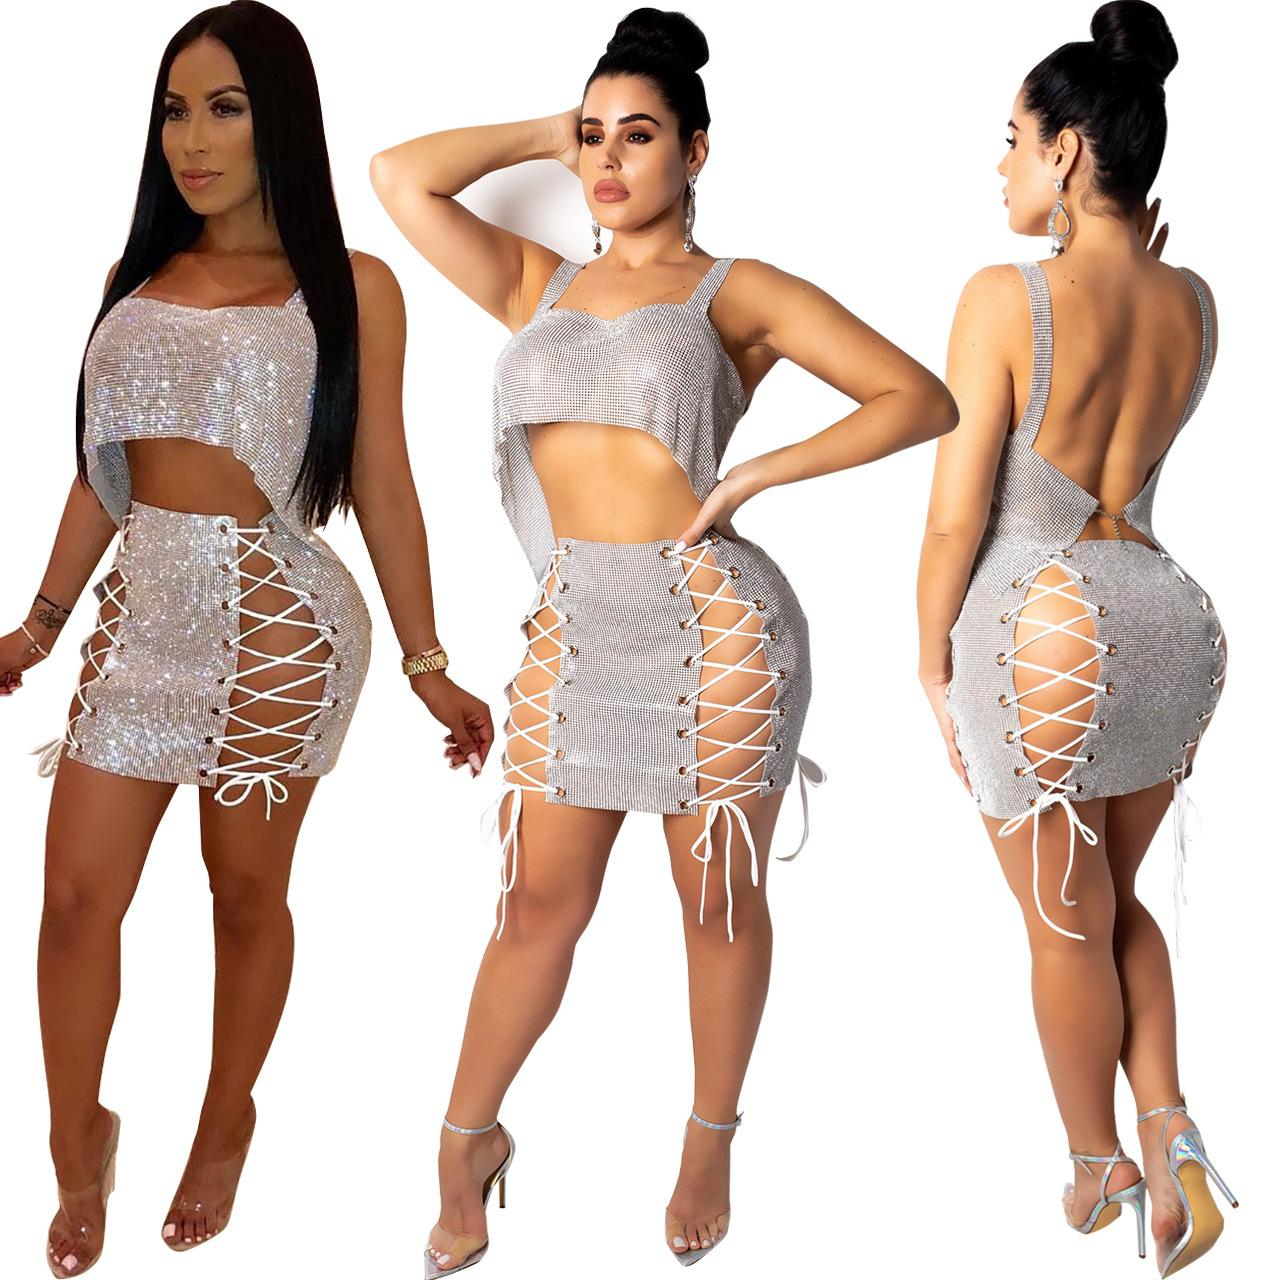 80de4cdf5b Women 2 Piece Outfits Chain Lace Up Sexy Club Two Piece Dresses Bling Short  Crop Sleeveless Vest + Mini Skirt Sets Cocktail Party Outfits